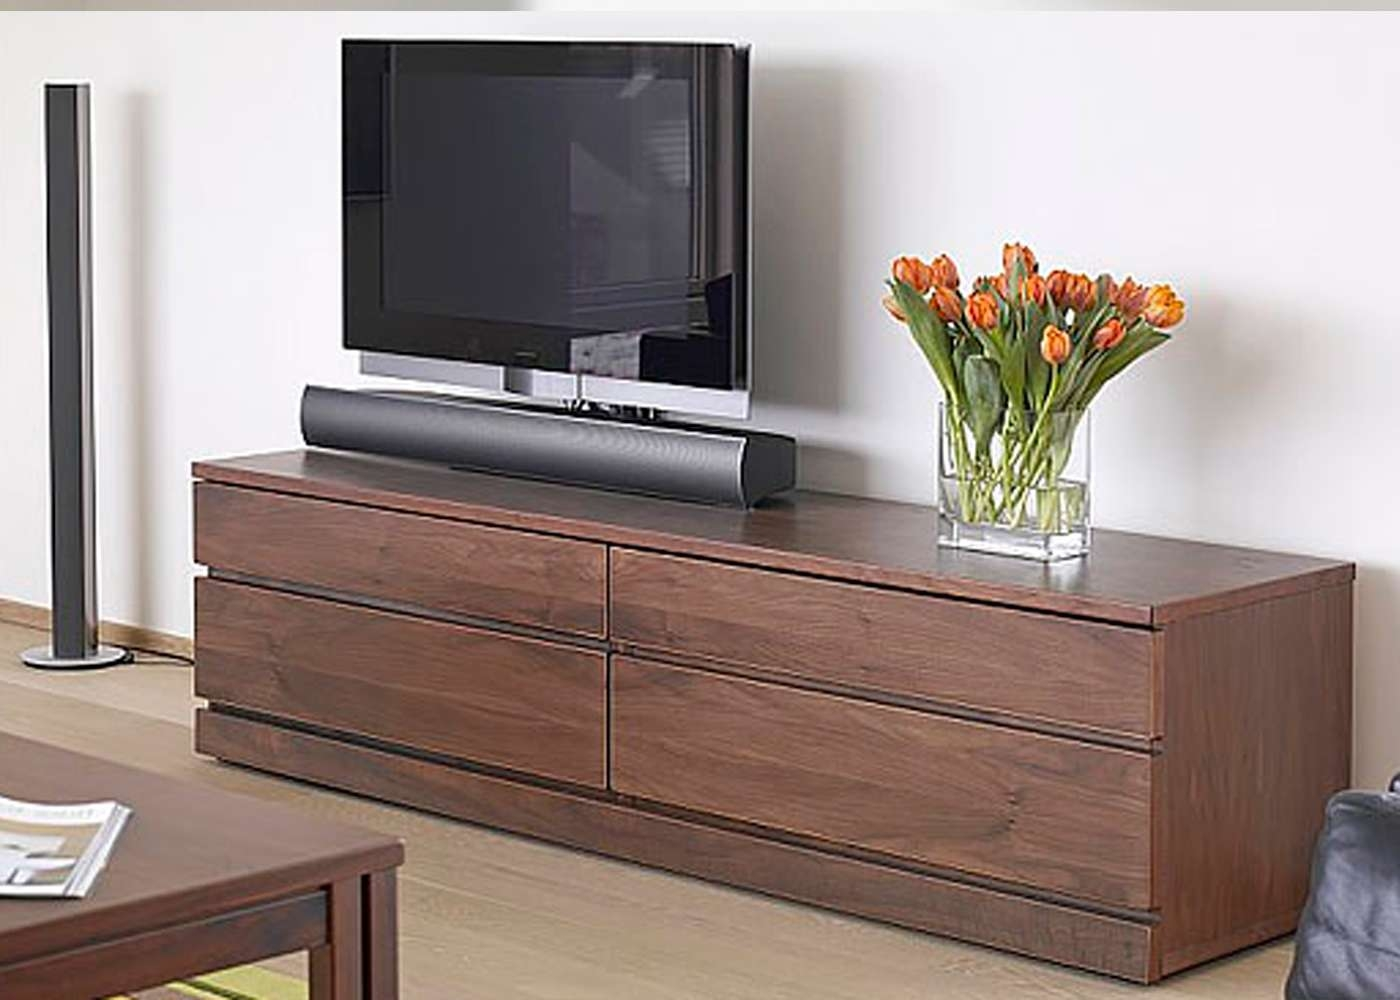 Skovby Sm87 Tv Cabinet In Walnut Finish 1 – Midfurn Furniture With Regard To Walnut Tv Cabinets With Doors (View 14 of 20)